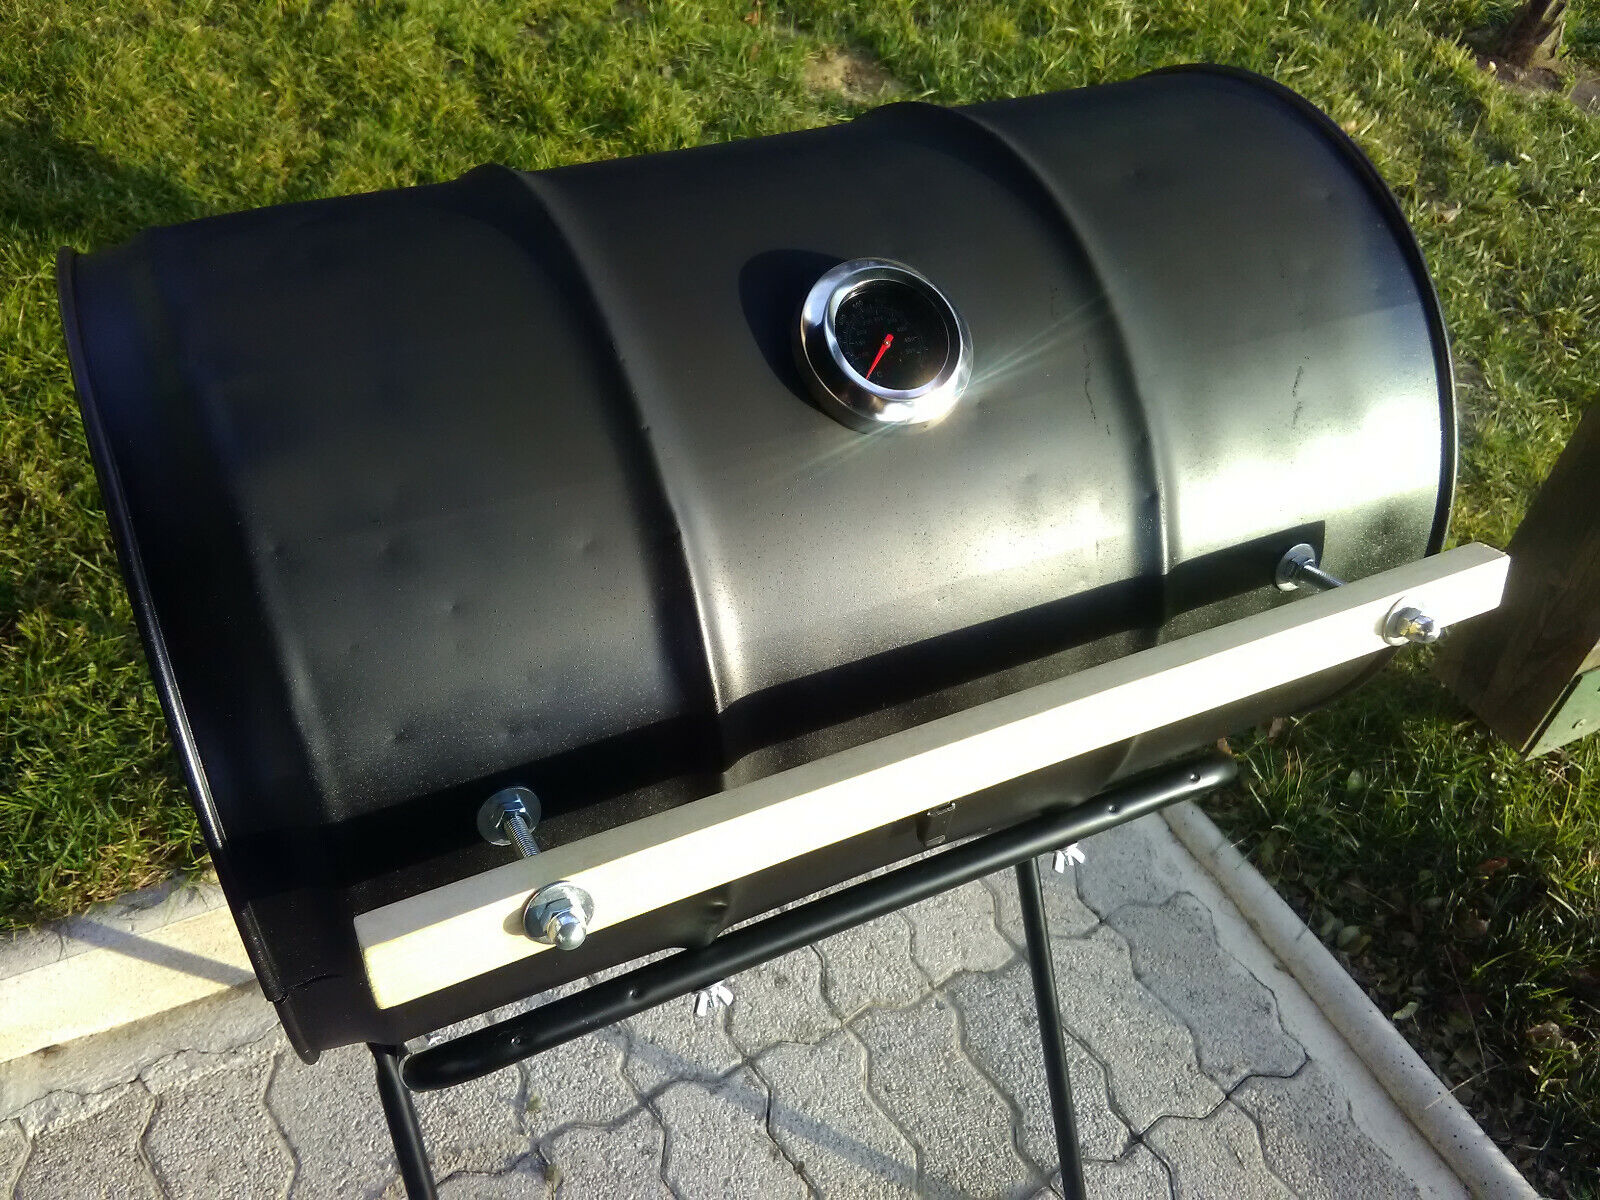 Oil Drum- Barrel Barbecue Smoker BBQ - Charcoal Oil Drum BBQ �PRICE REDUCED�